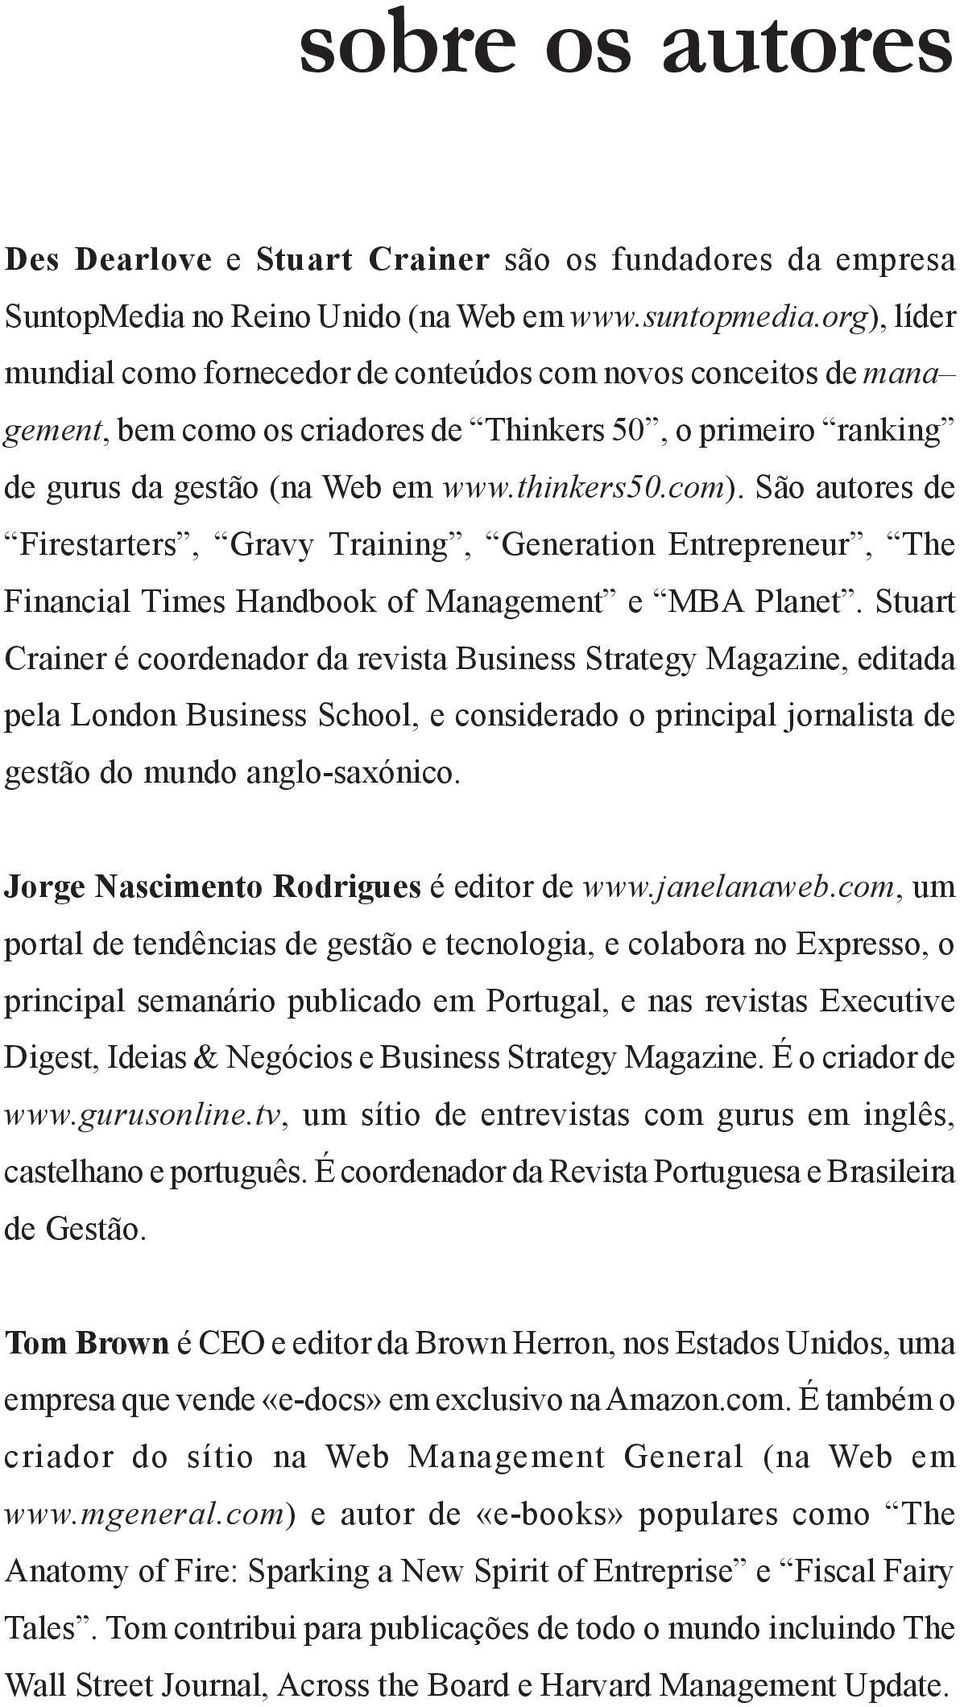 São autores de Firestarters, Gravy Training, Generation Entrepreneur, The Financial Times Handbook of Management e MBA Planet.